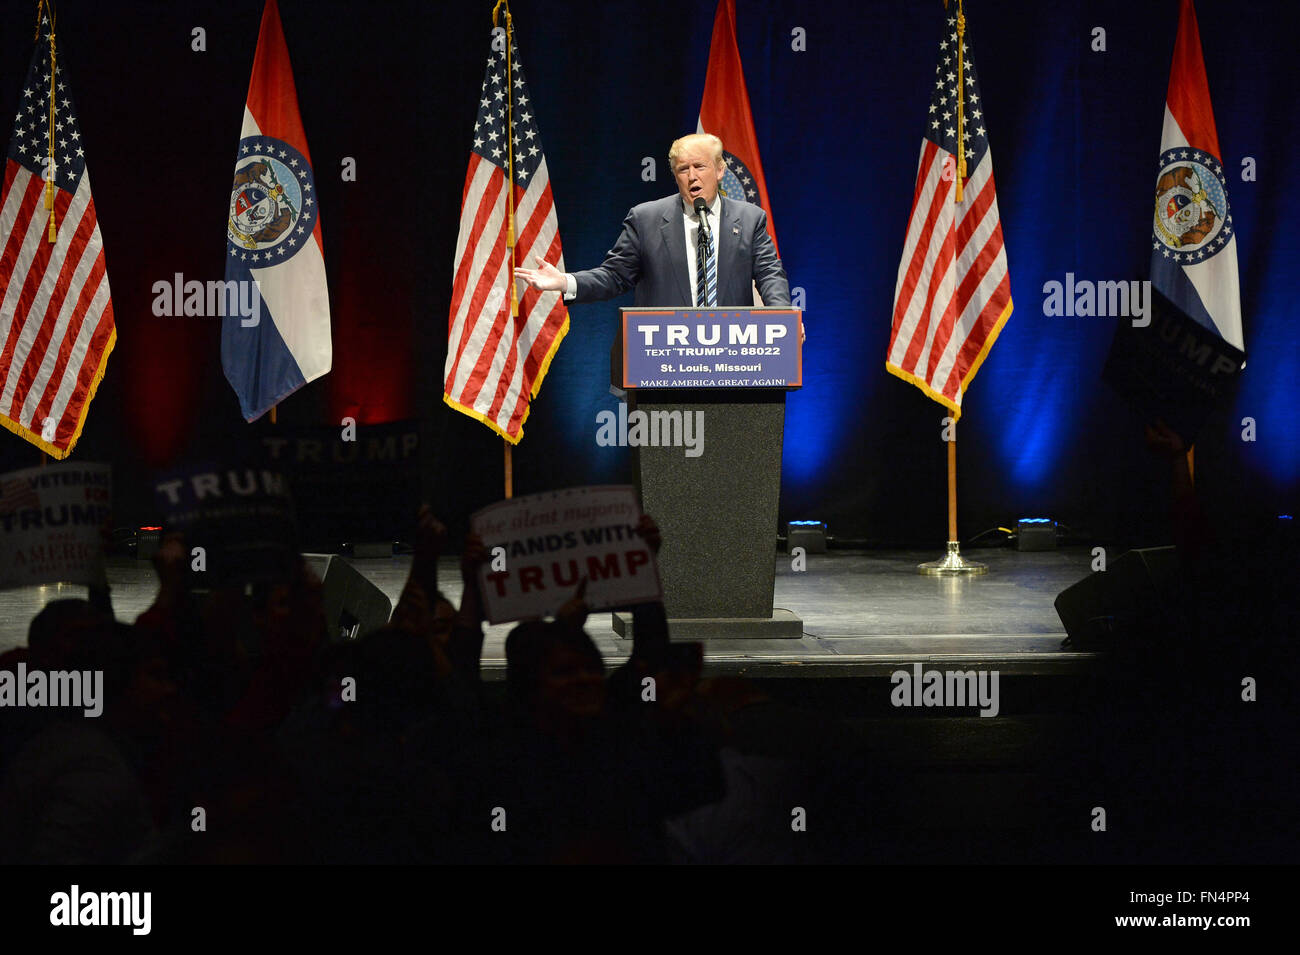 Saint Louis, MO, USA – March 11, 2016: Donald Trump talks to supporters at the Peabody Opera House in Downtown Saint - Stock Image